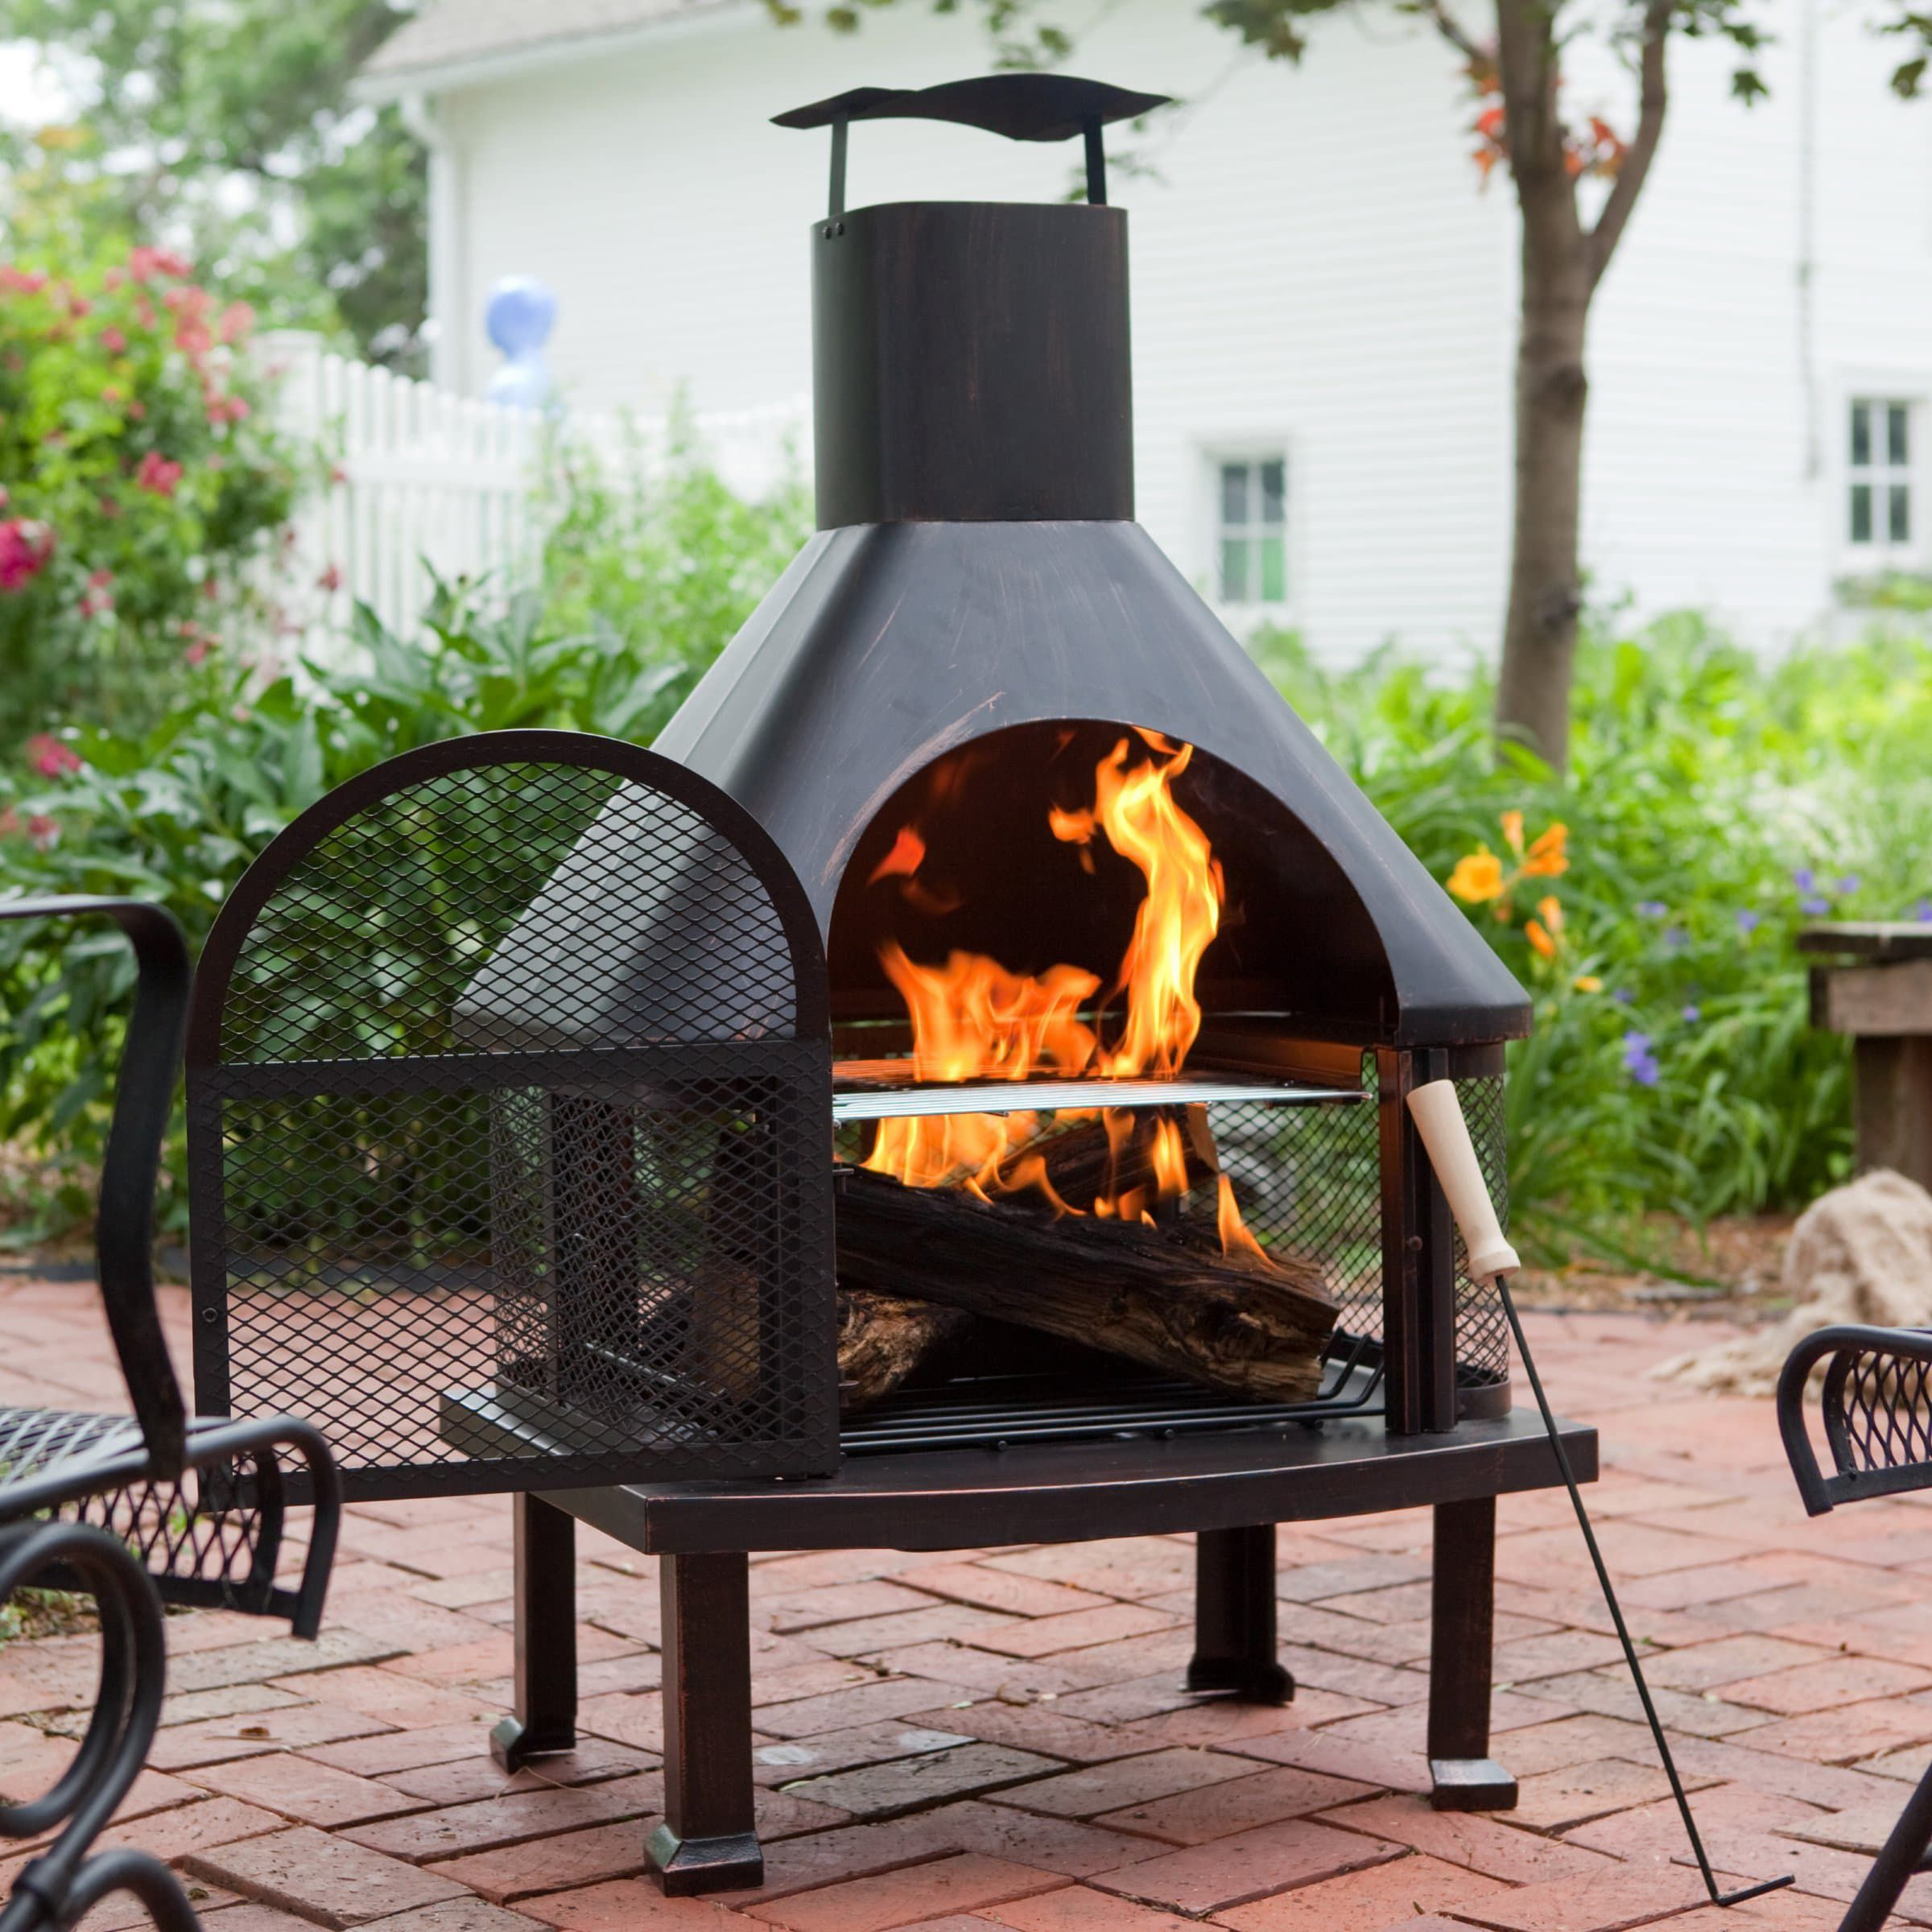 15 Fire Pits Chimineas For Every Budget To Keep You Outside Longer Fire Pit Patio Chiminea Fire Pit Fire Pit Chimney